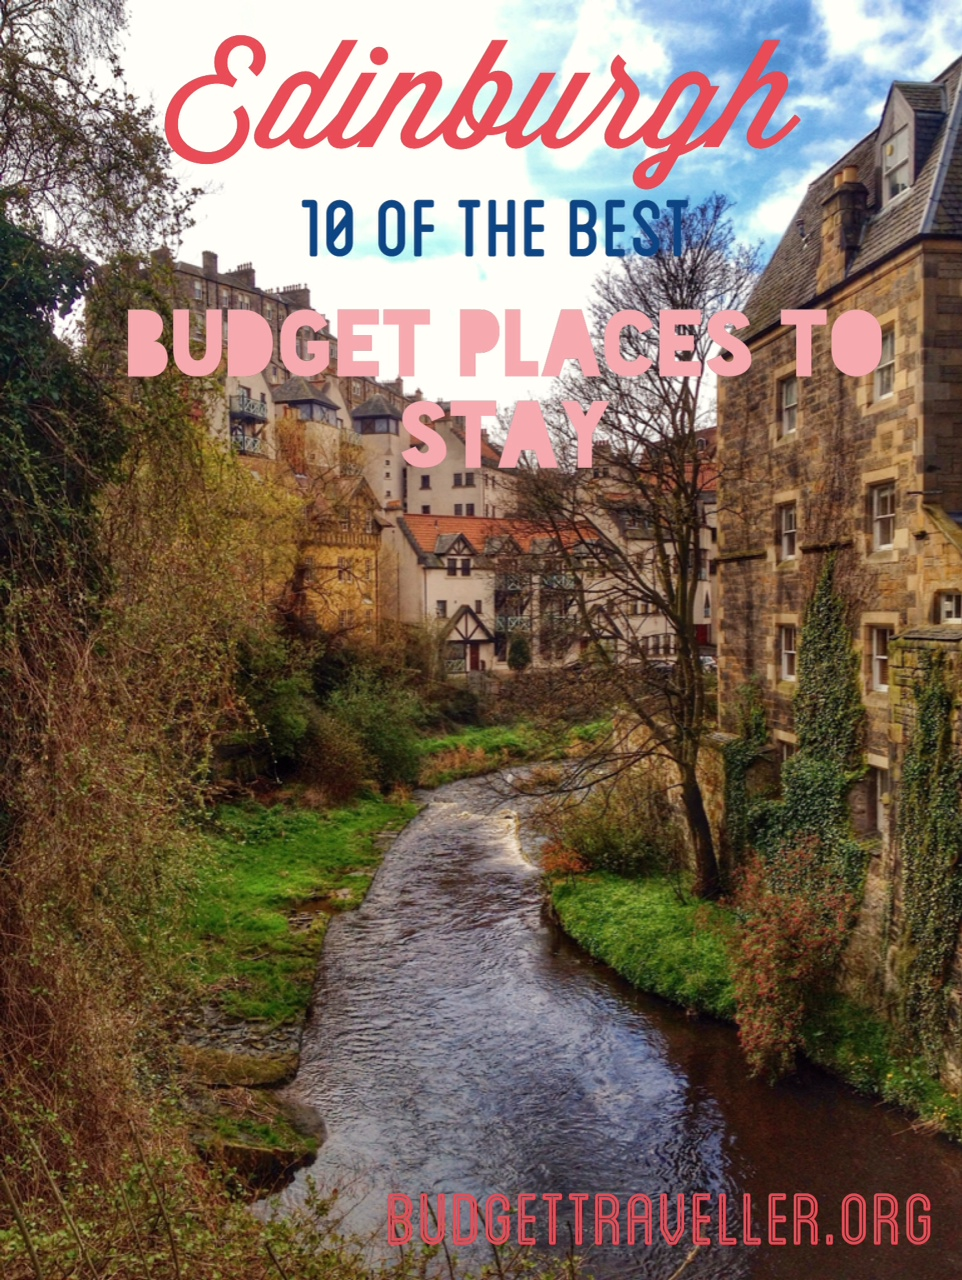 Edinburgh budget places to stay